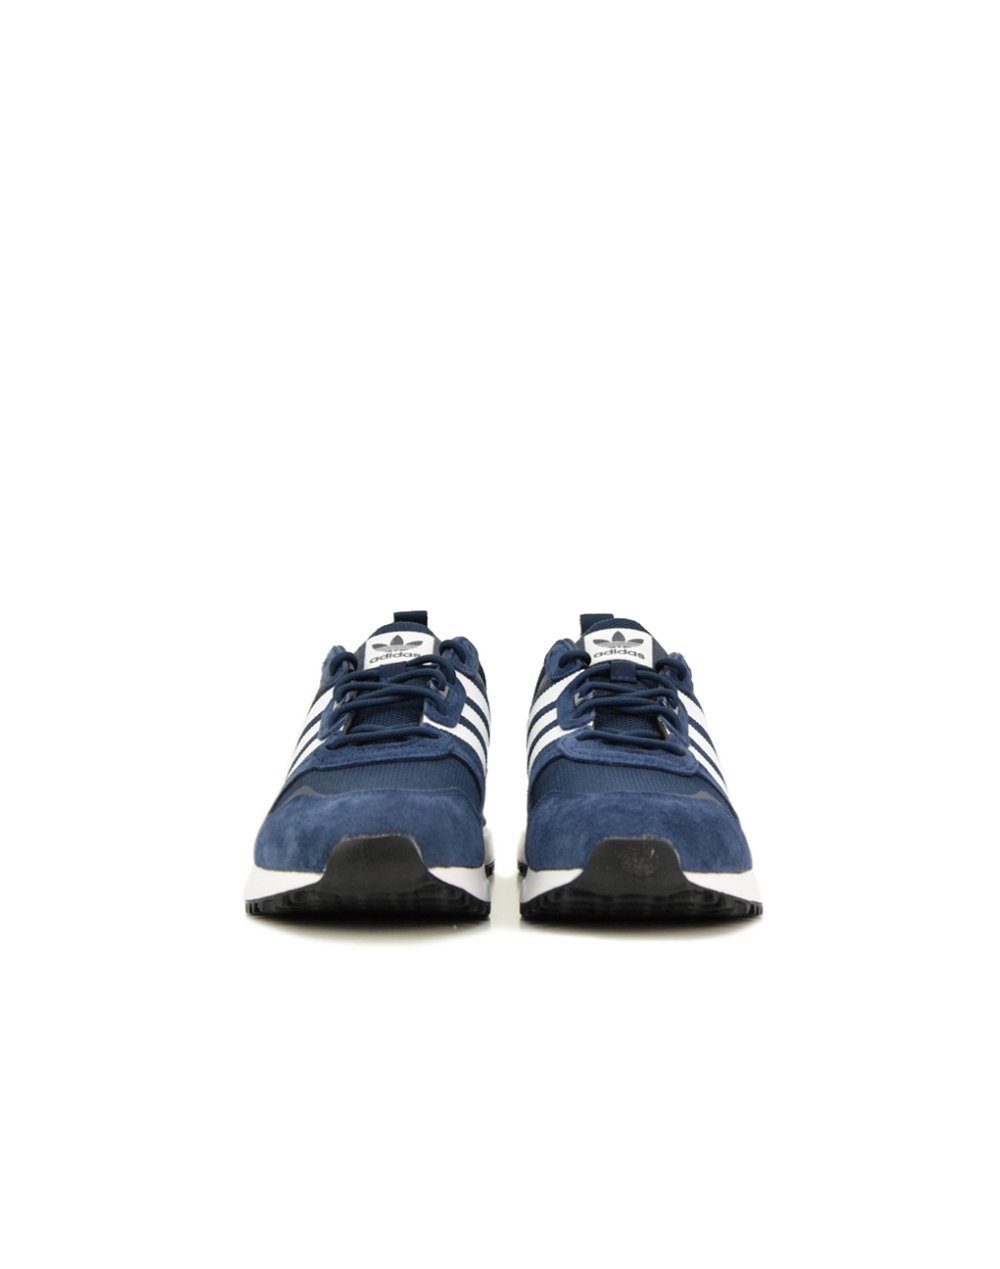 Adidas ZX 700 HD (FY1102) Navy/White/Black